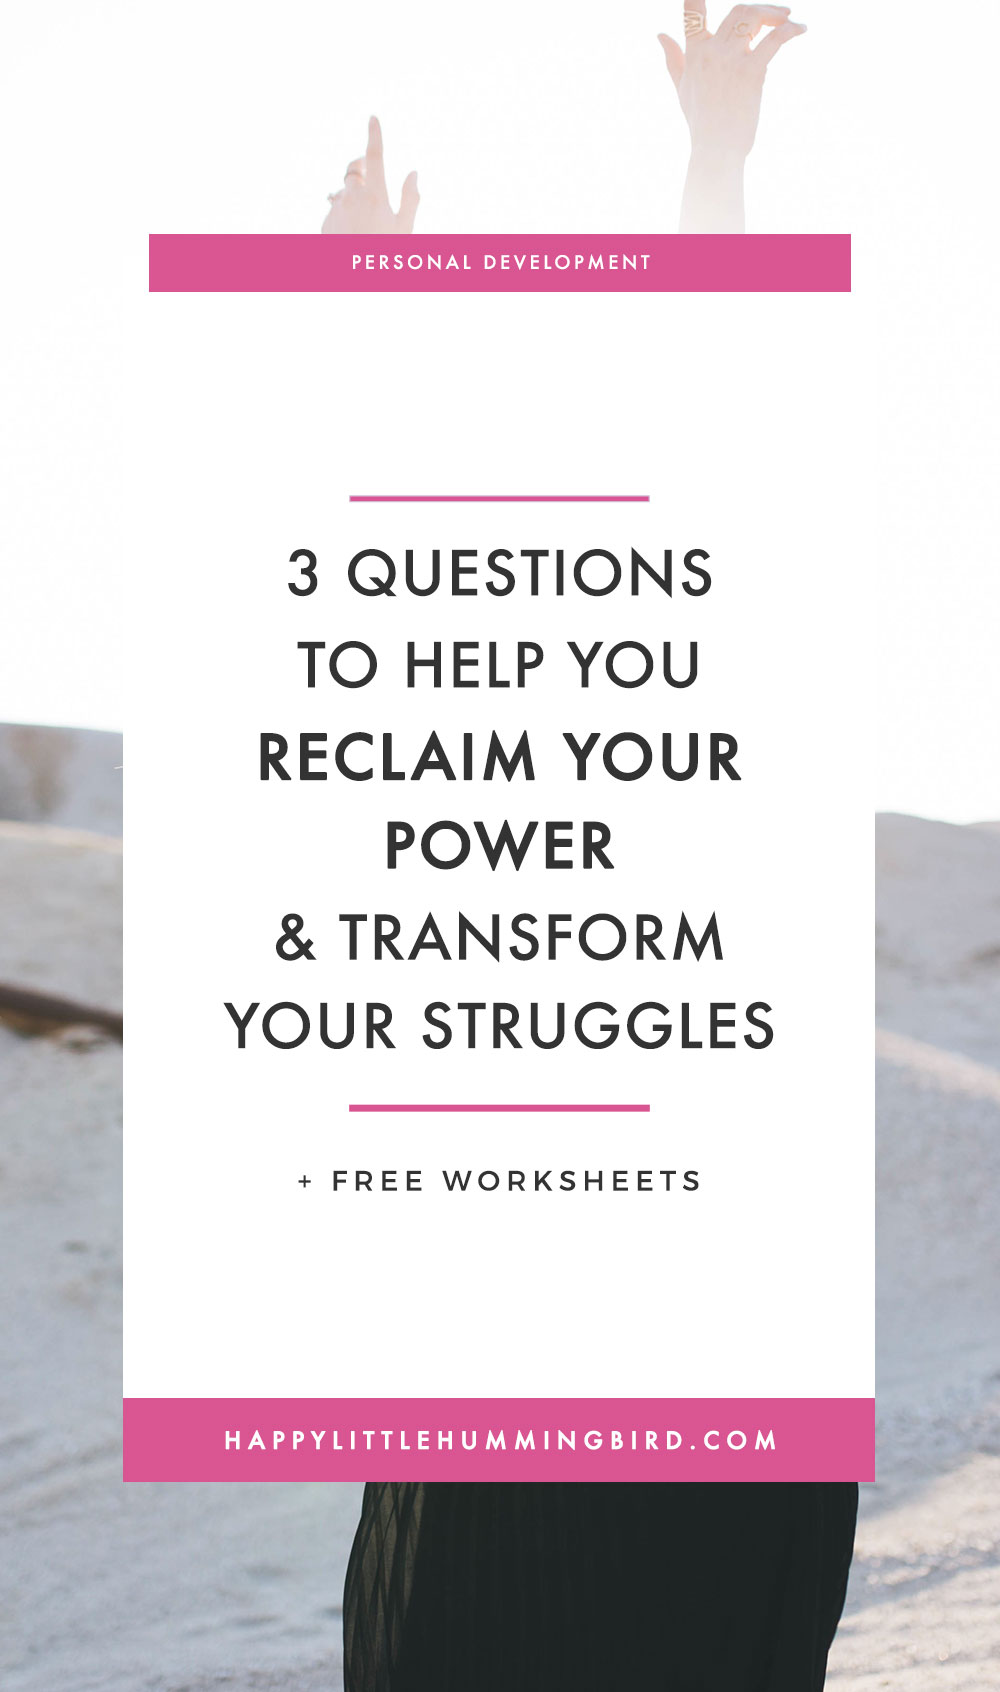 Are you facing a difficult situation right now and feel stuck, frustrated and don't know how to overcome it? Start by asking yourself 3 empowering questions to help shift your perspective and transform a challenging situation into a positive one.